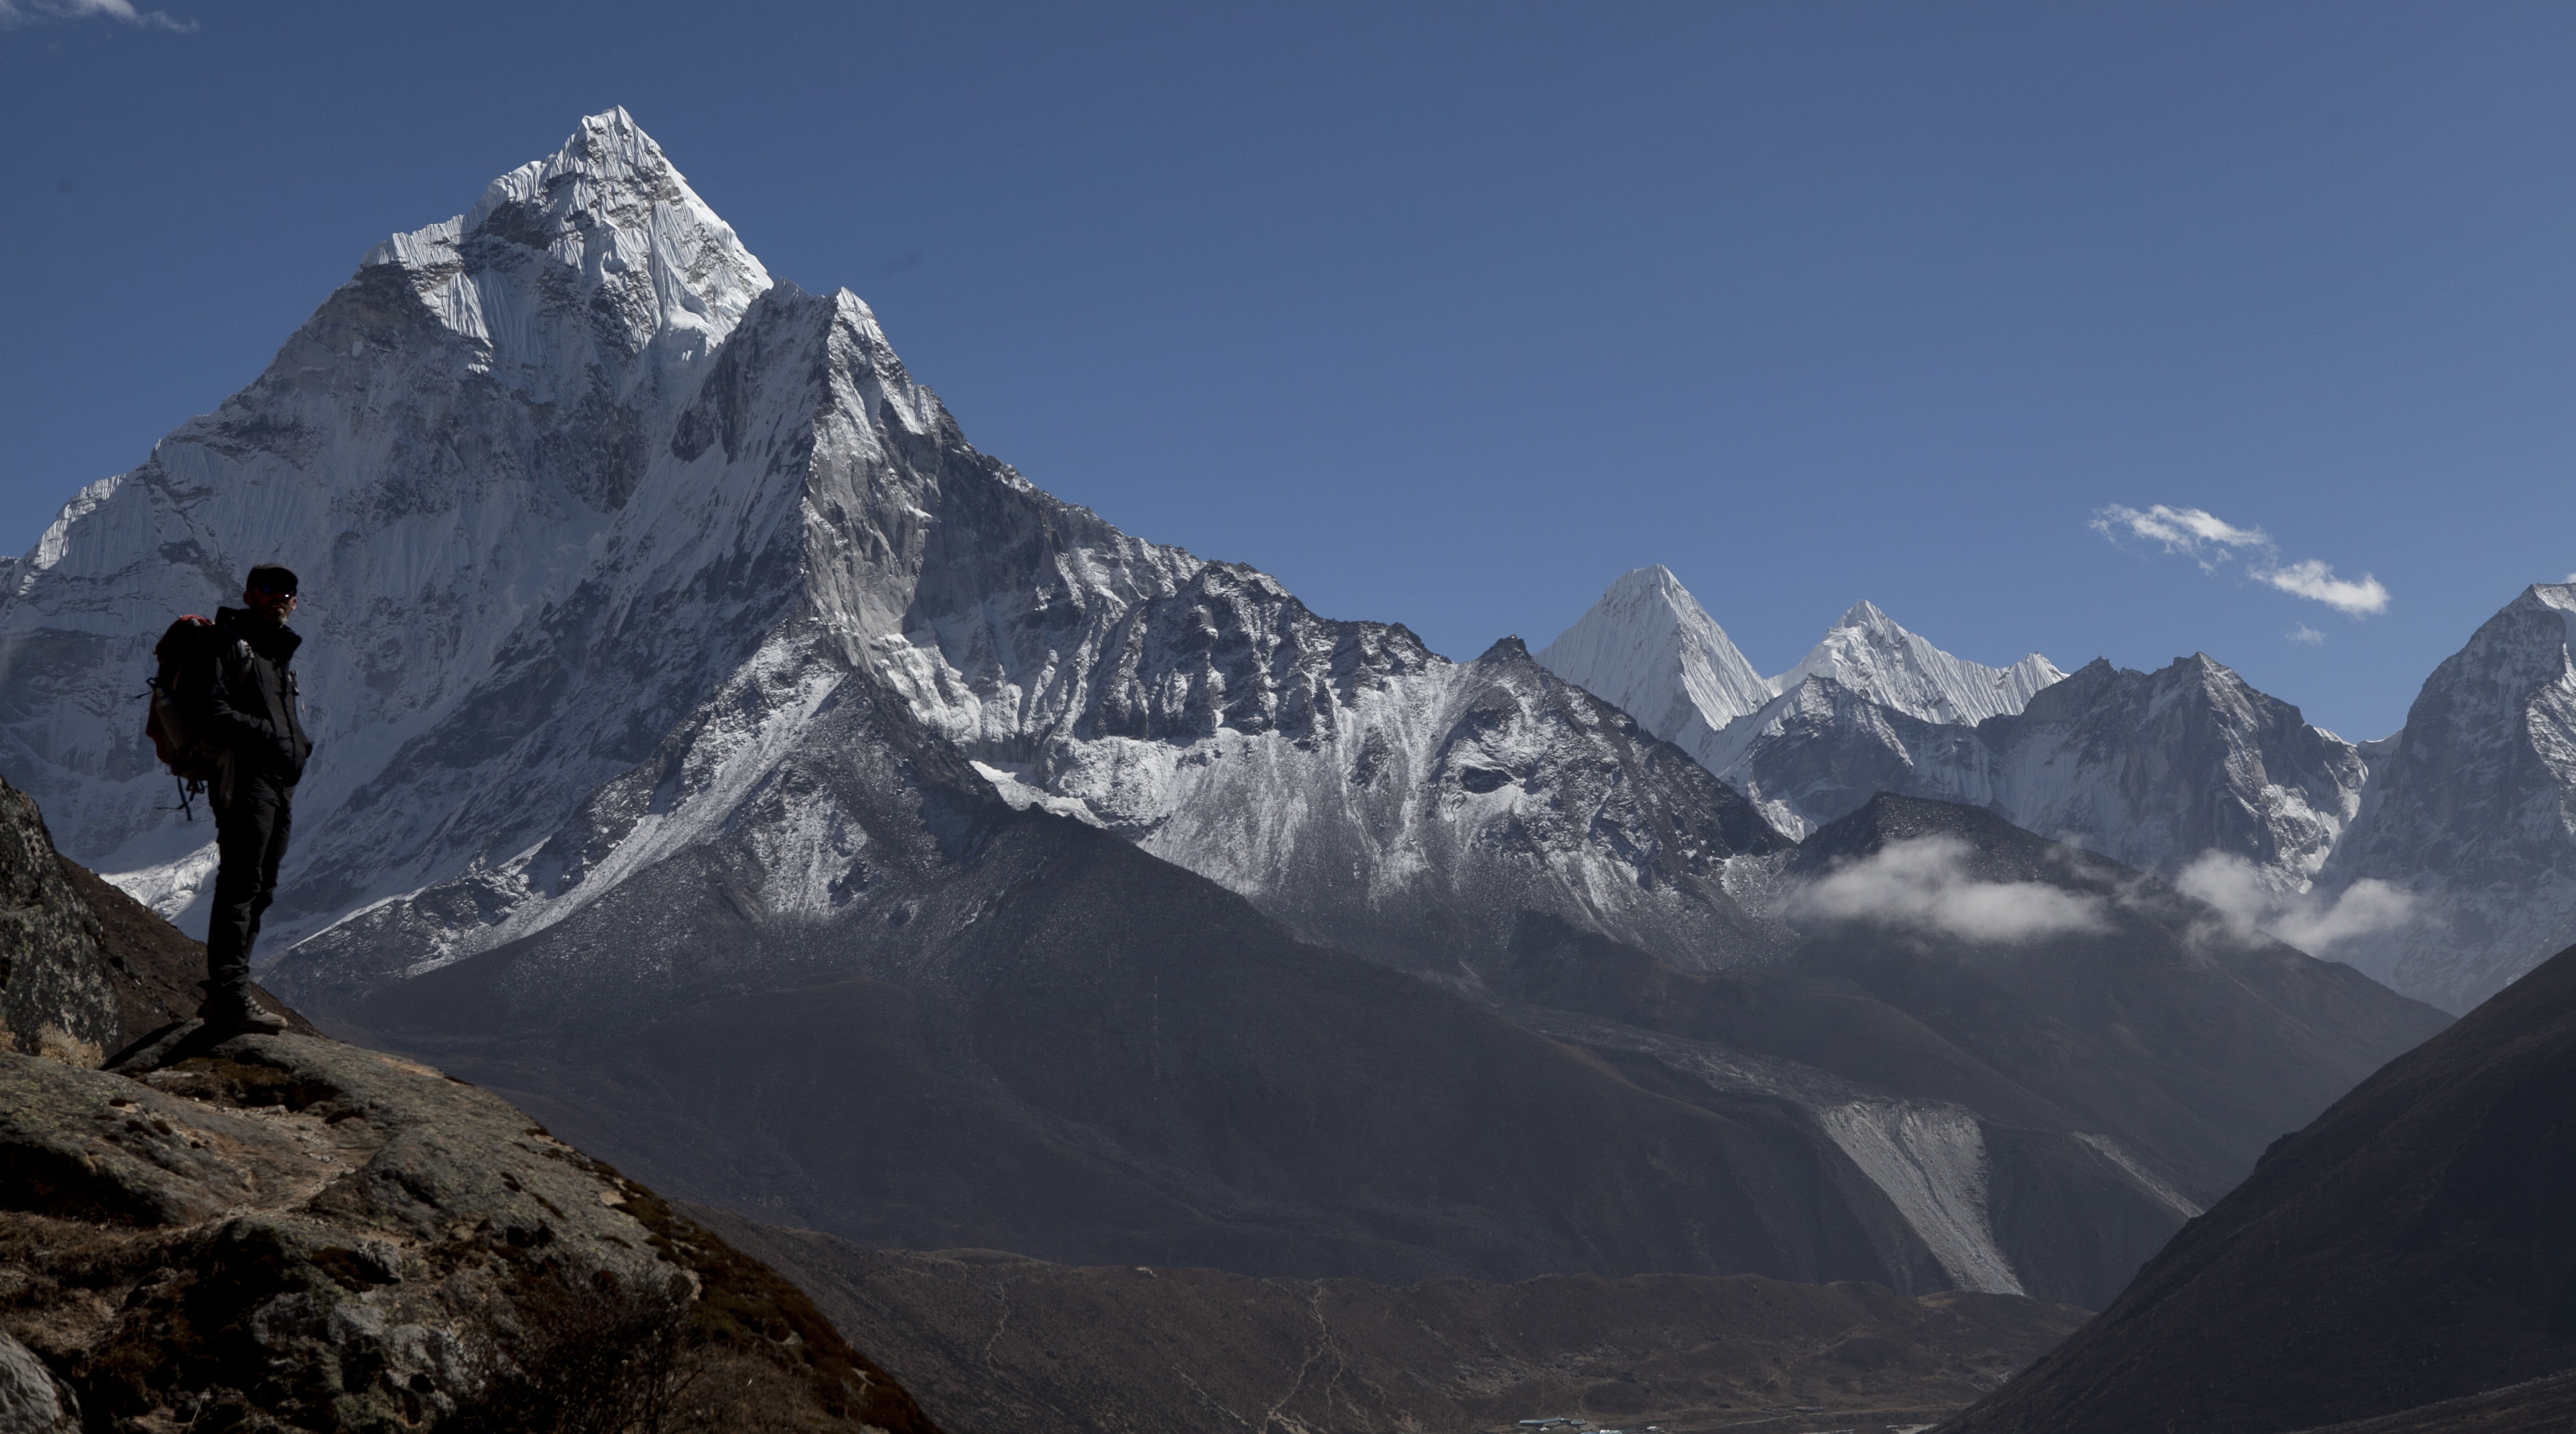 In this Sunday, Oct. 25, 2015 photo, a trekker pauses as he makes his way towards Everest Base camp, above Pheriche valley, Nepal. Earlier in August, Nepal announced the opening of Mount Everest to climbers for the first time since an earthquake-triggered avalanche in April killed 19 mountaineers and ended the popular spring climbing season. Since April's earthquake, which killed nearly 9,000 people, Nepal has been desperate to bring back the tens of thousands of tourists who enjoy trekking the country's mountain trails and climbing its Himalayan peaks. (AP Photo/Tashi Sherpa)